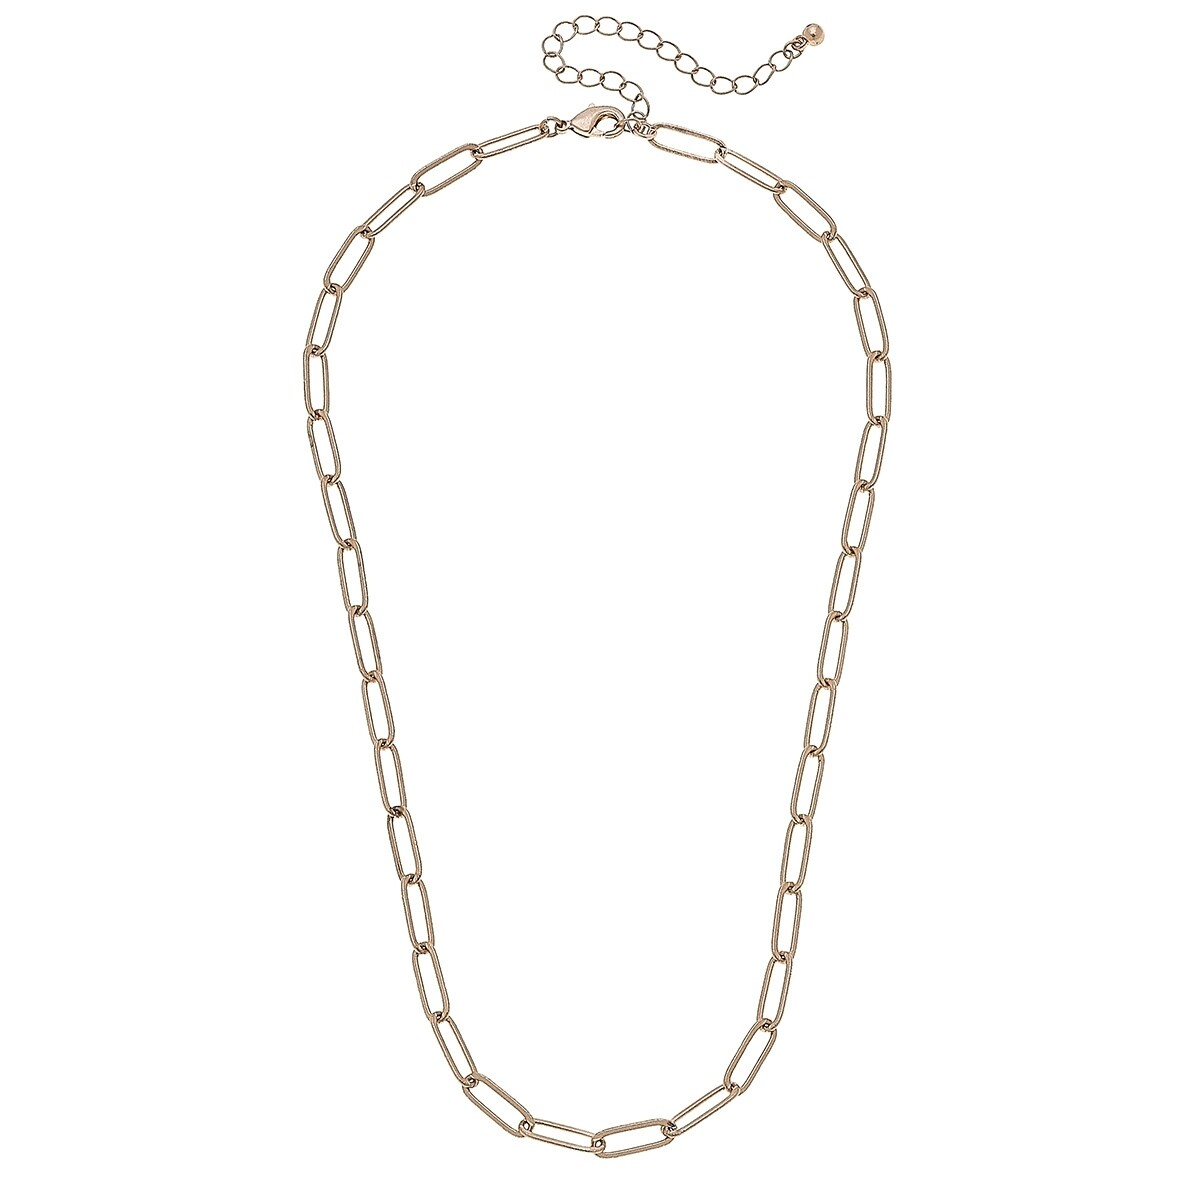 Elodie Paperclip Chain Necklace